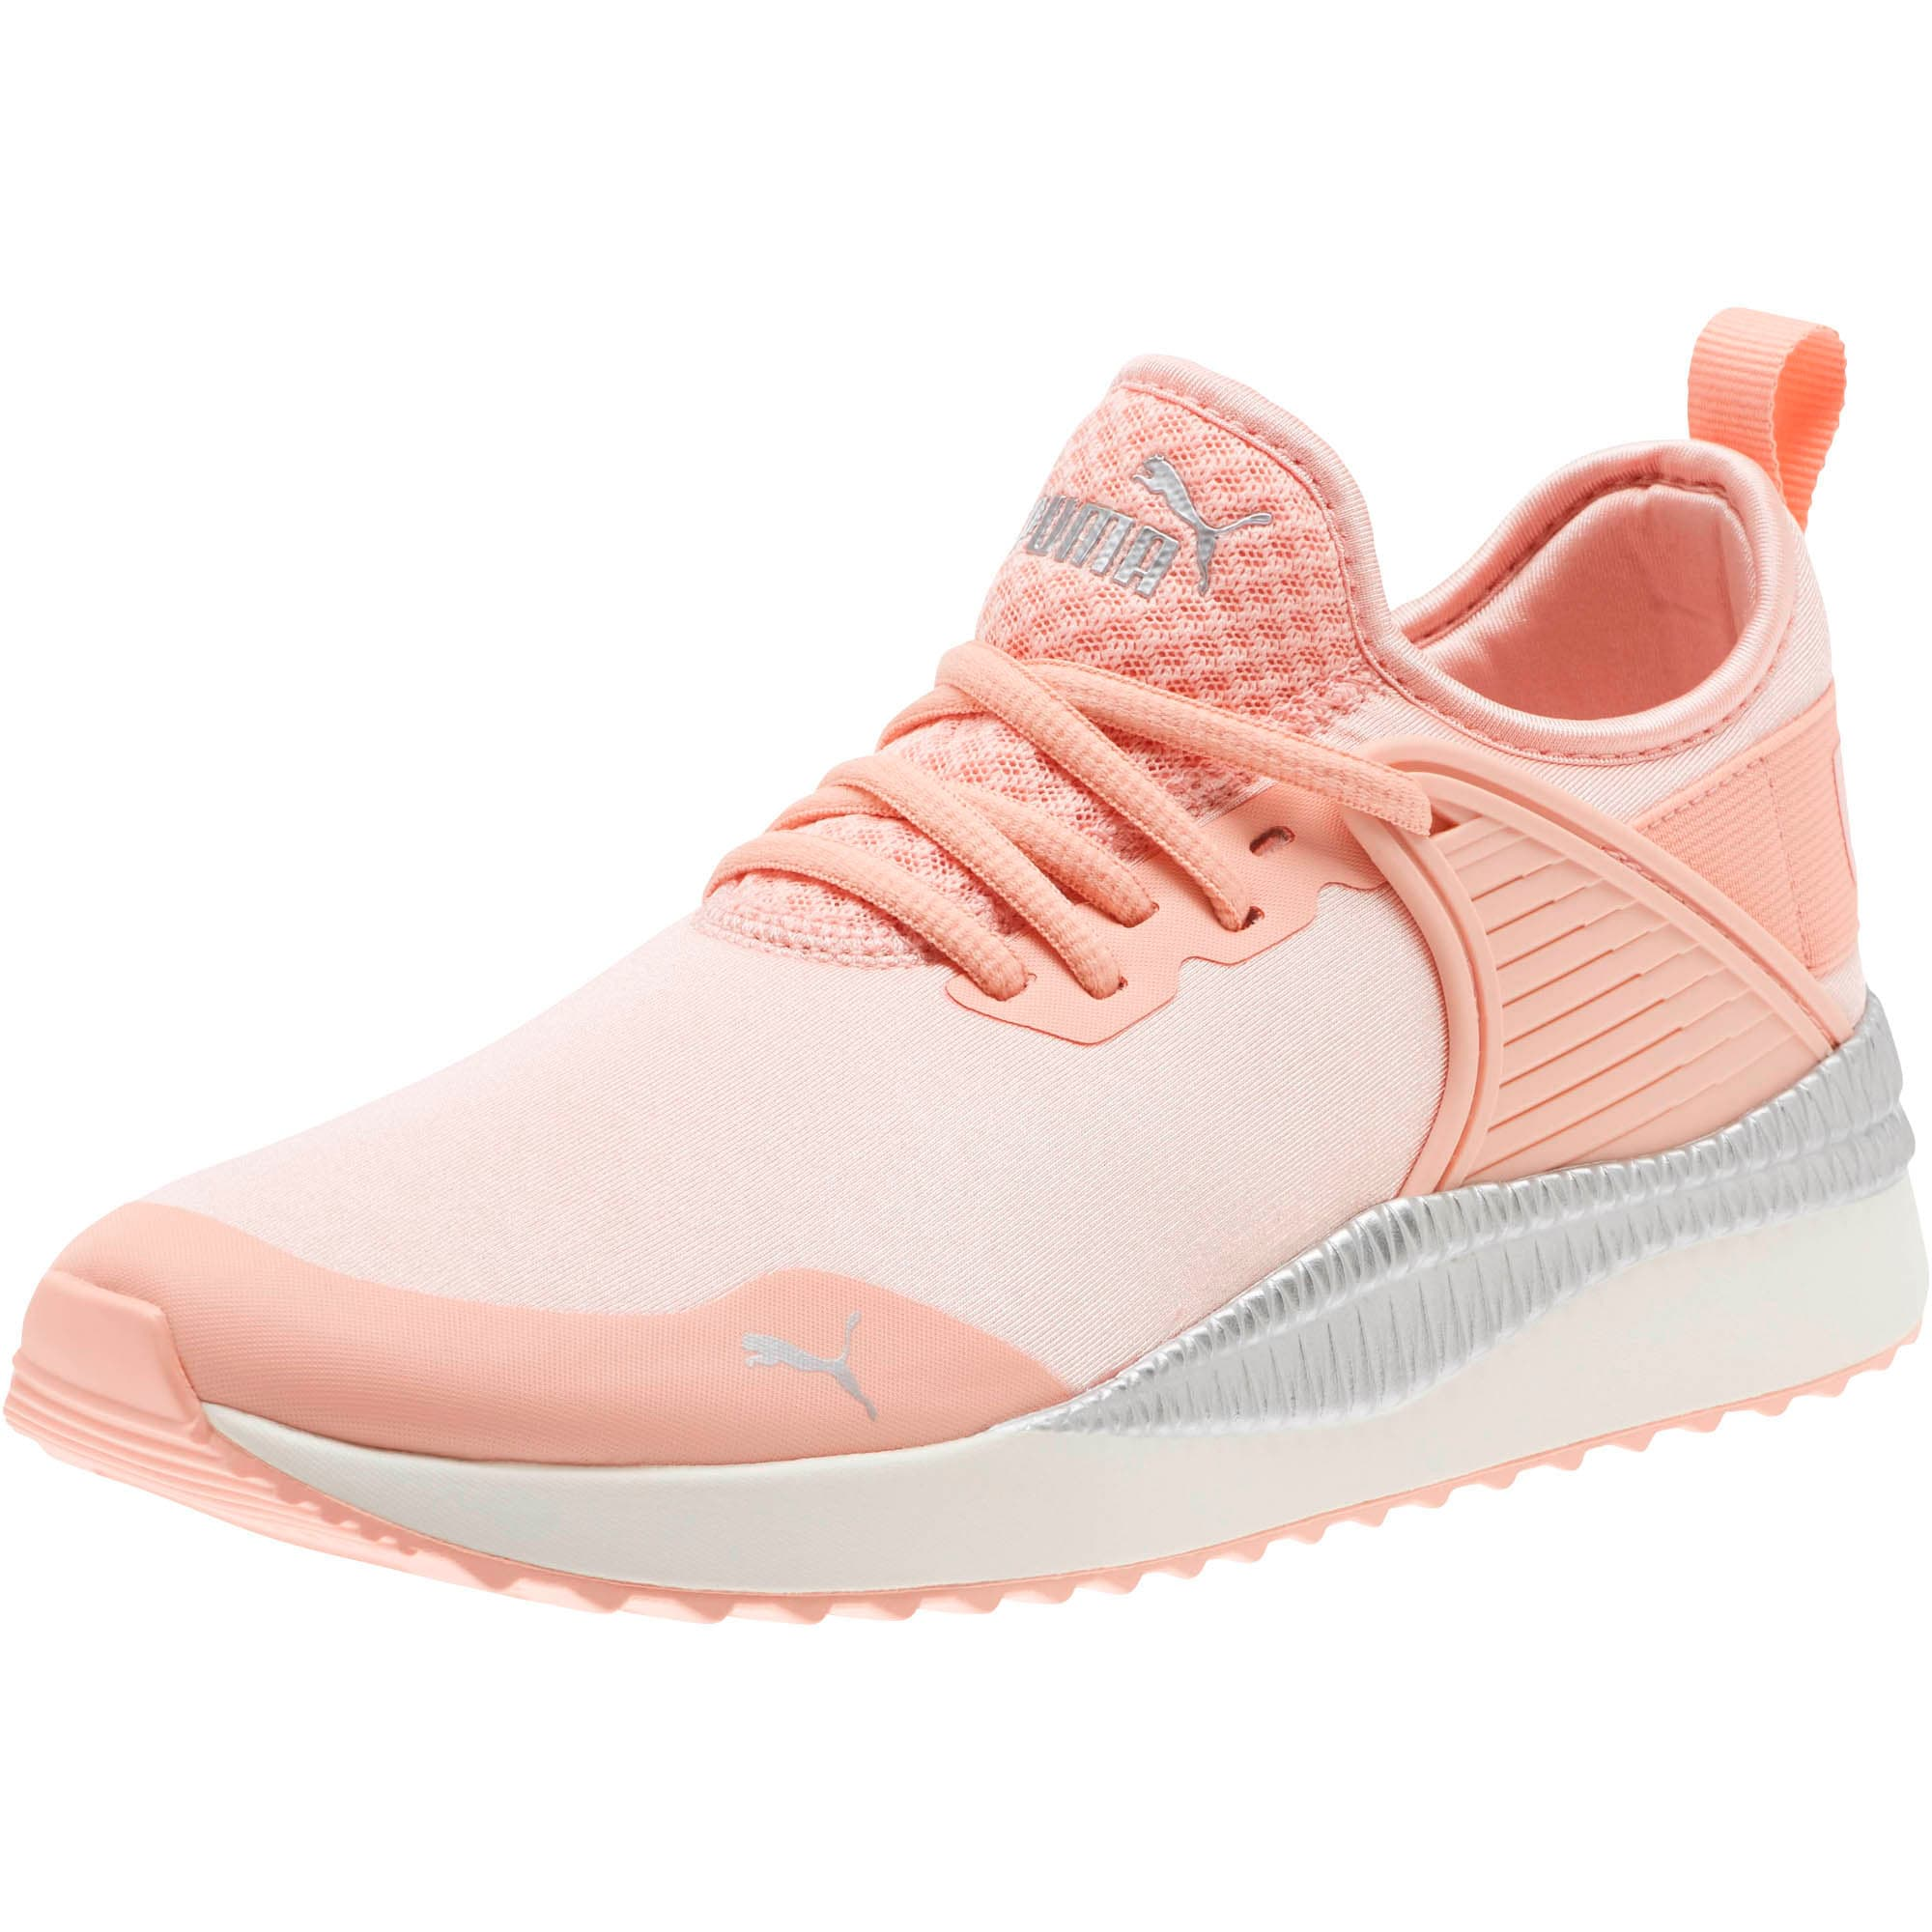 Thumbnail 1 of Pacer Next Cage ST2 Women's Sneakers, Peach Bud-Puma Silver, medium